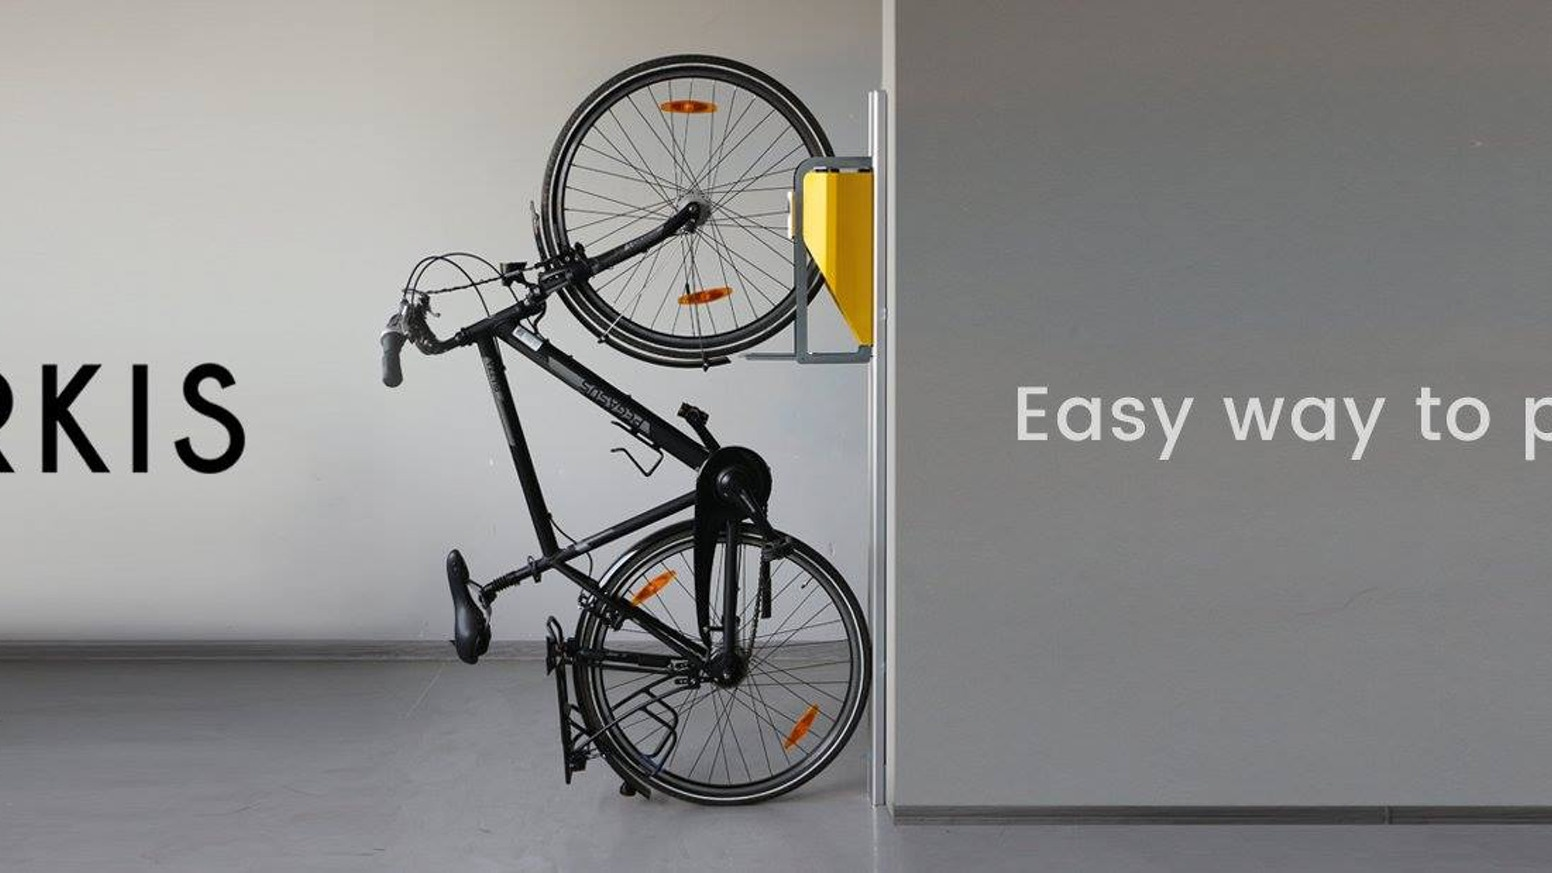 Will There Someday Be Bike In >> Parkis Space Saving Bicycle Lift By Giedre Kickstarter